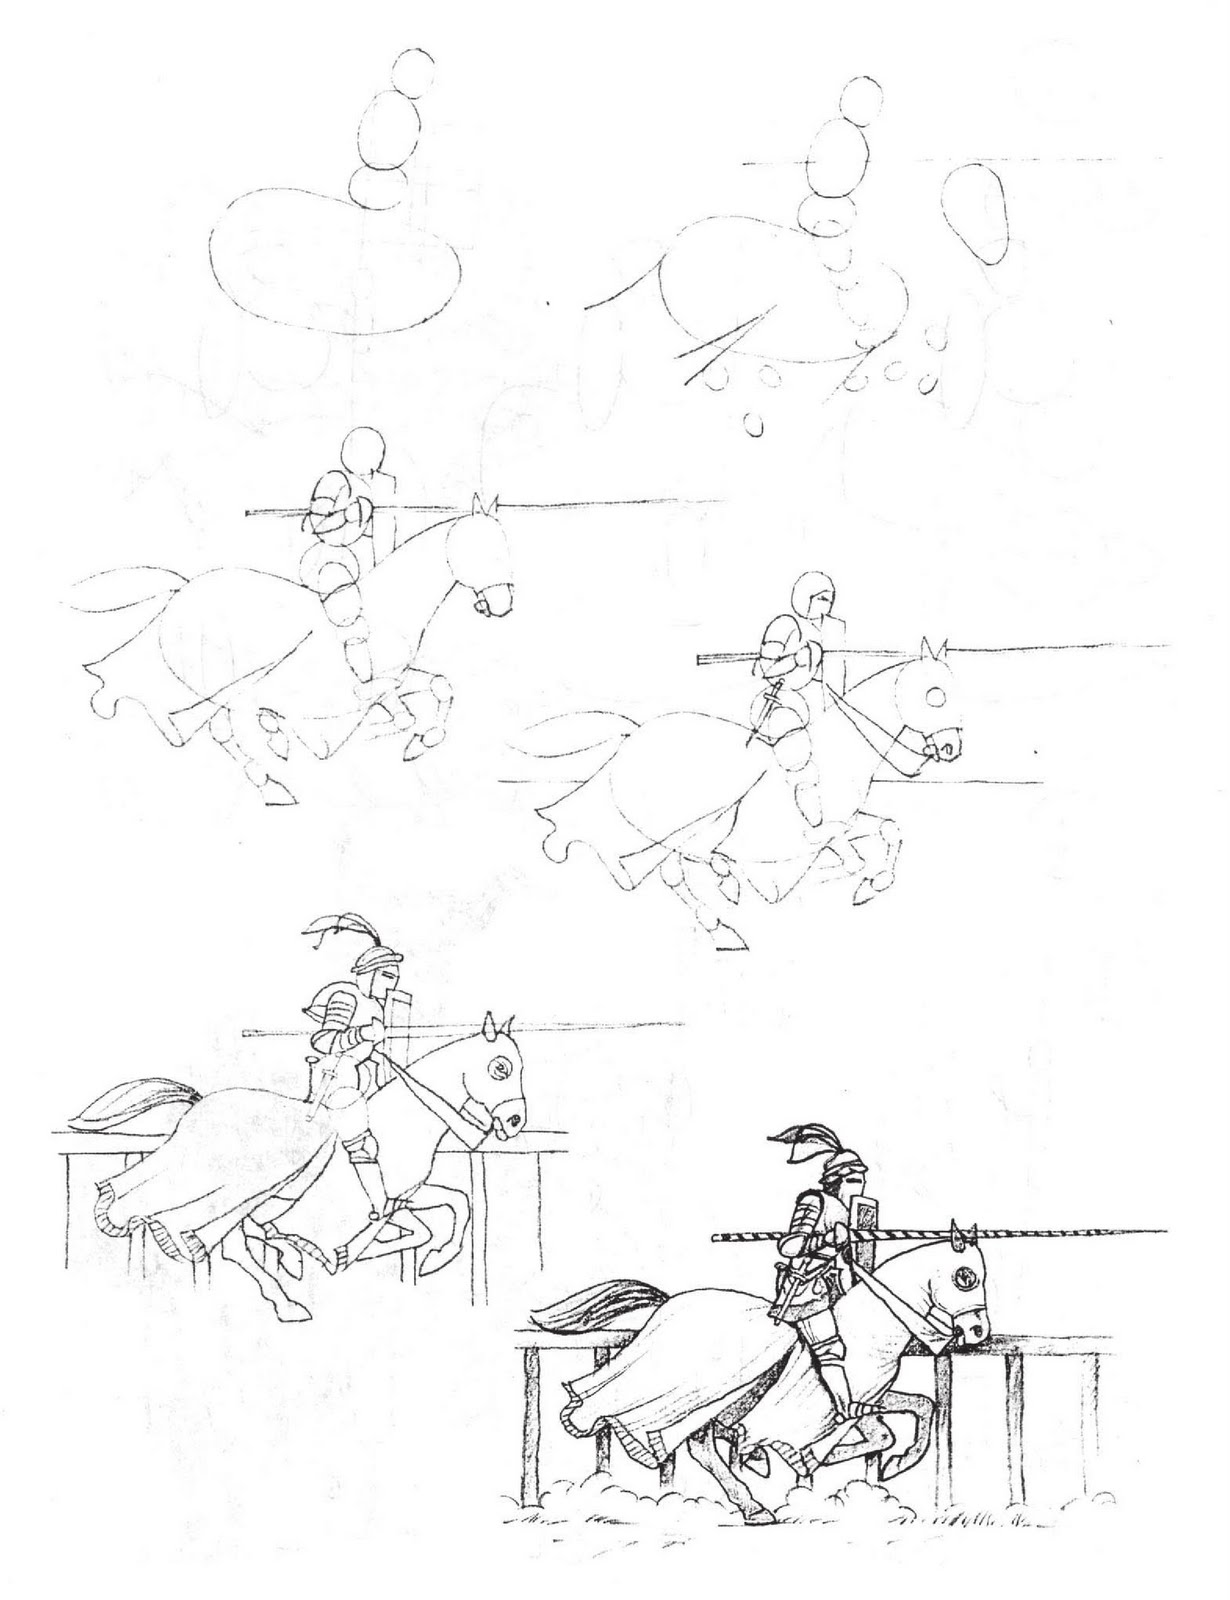 how to draw a knight on a horse knight on a horse drawing at getdrawingscom free for to draw knight horse a how a on